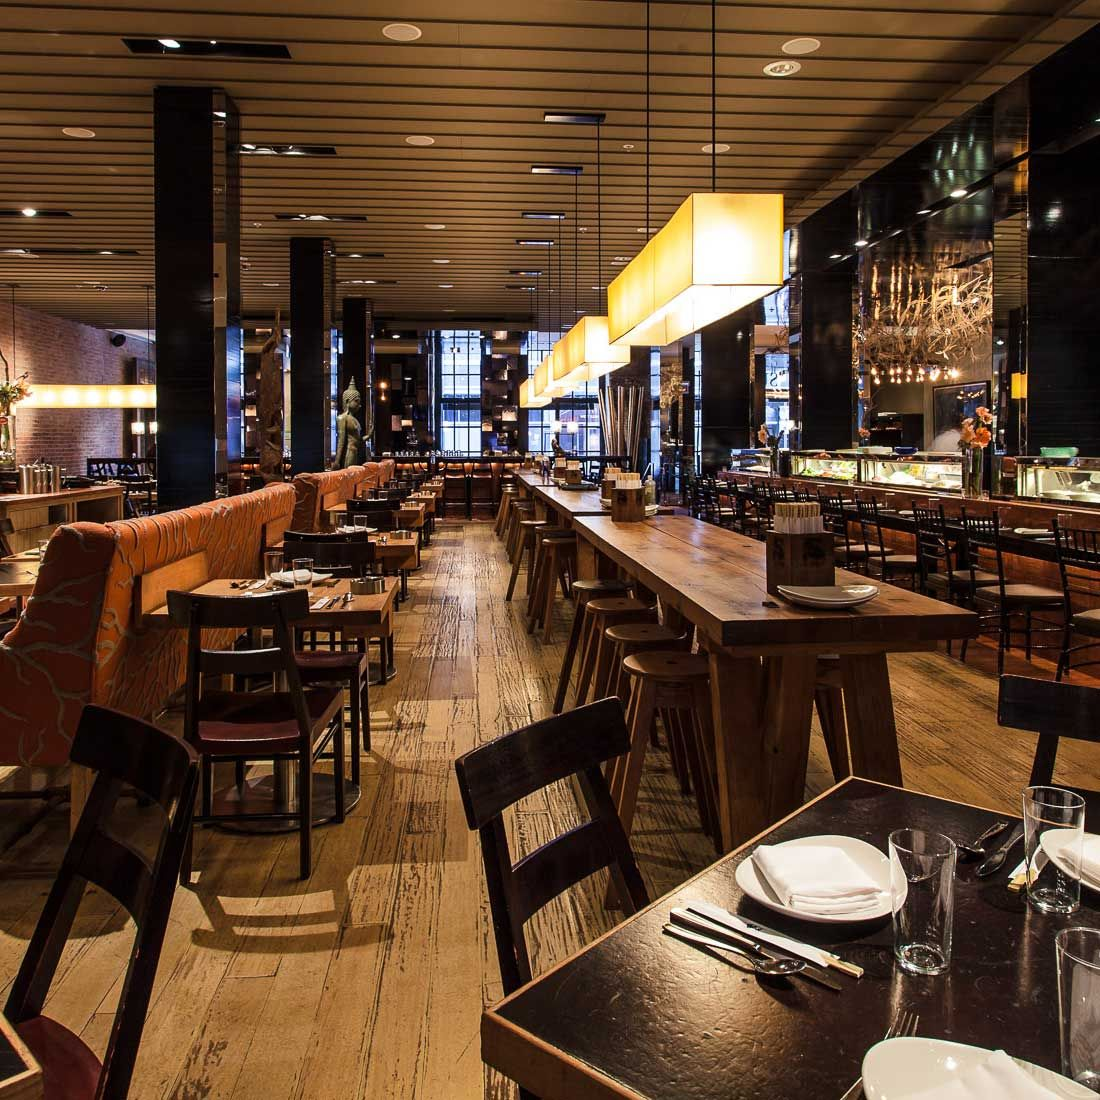 Sunda Located Within Chicago S Bustling River North Neighborhood Pairs New Asian Fare With Midwestern Hospitality For An Award Winning Concept